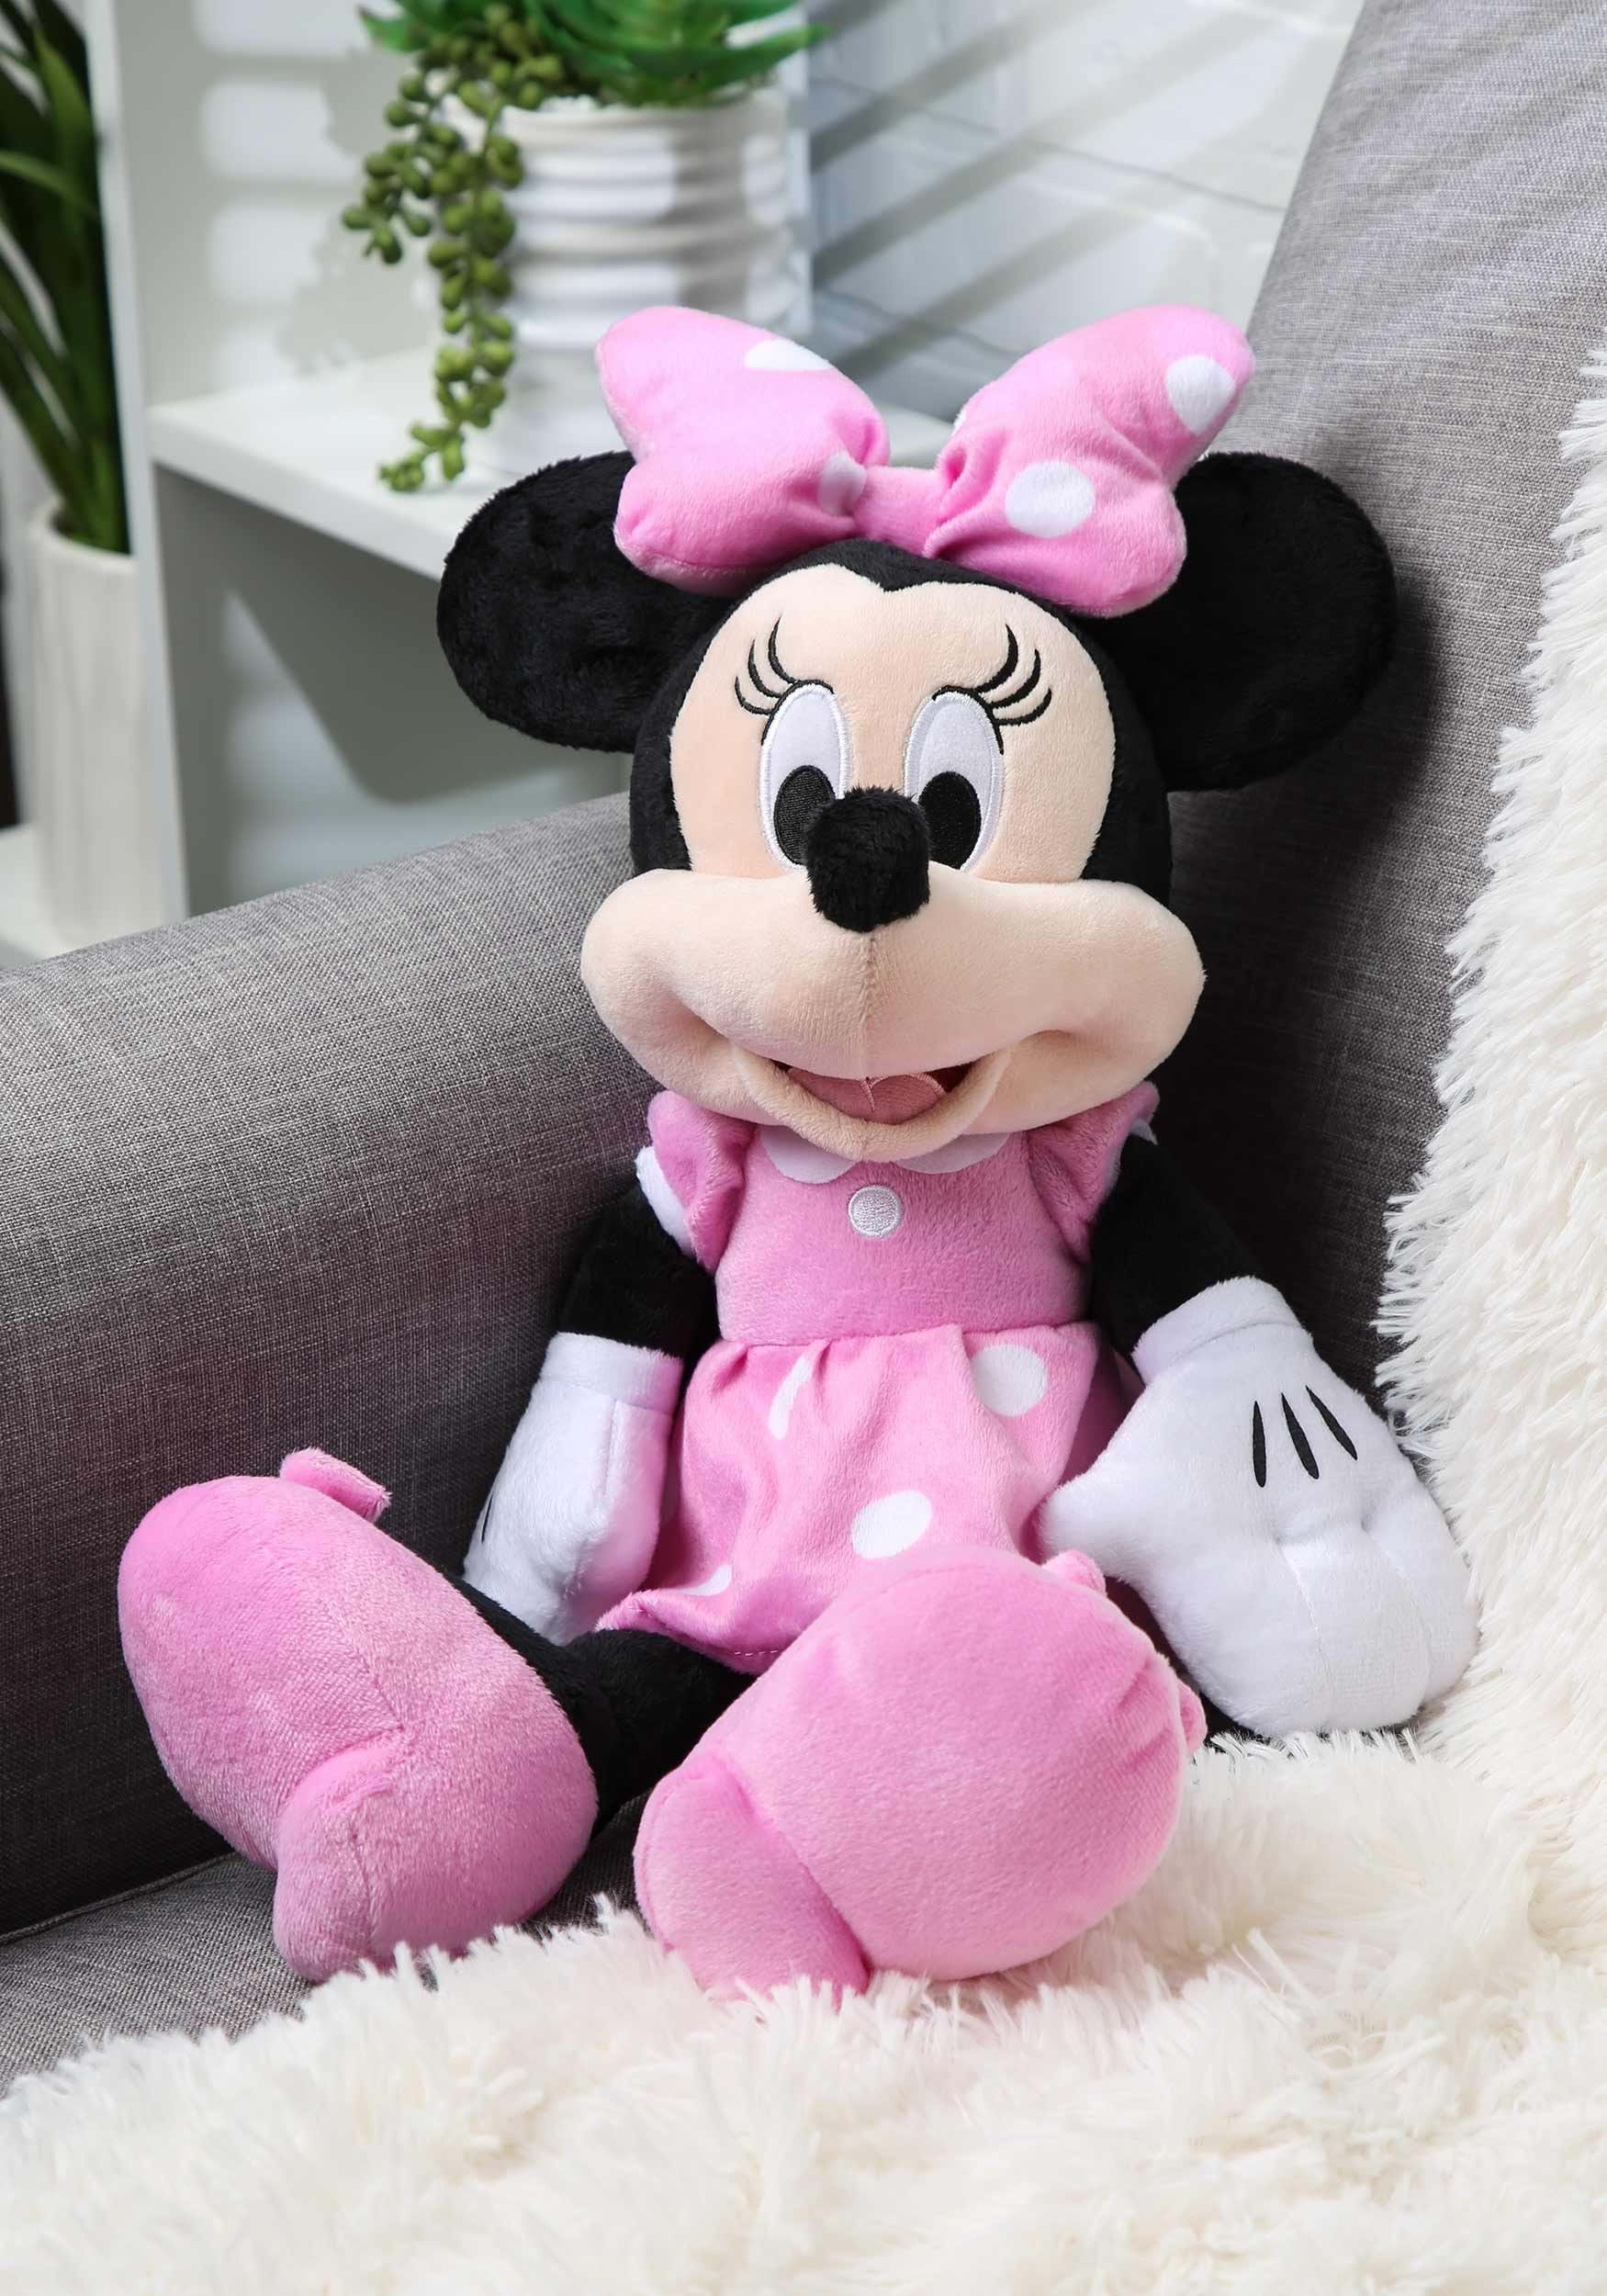 Minnie Mouse Toys : Minnie mouse quot stuffed toy